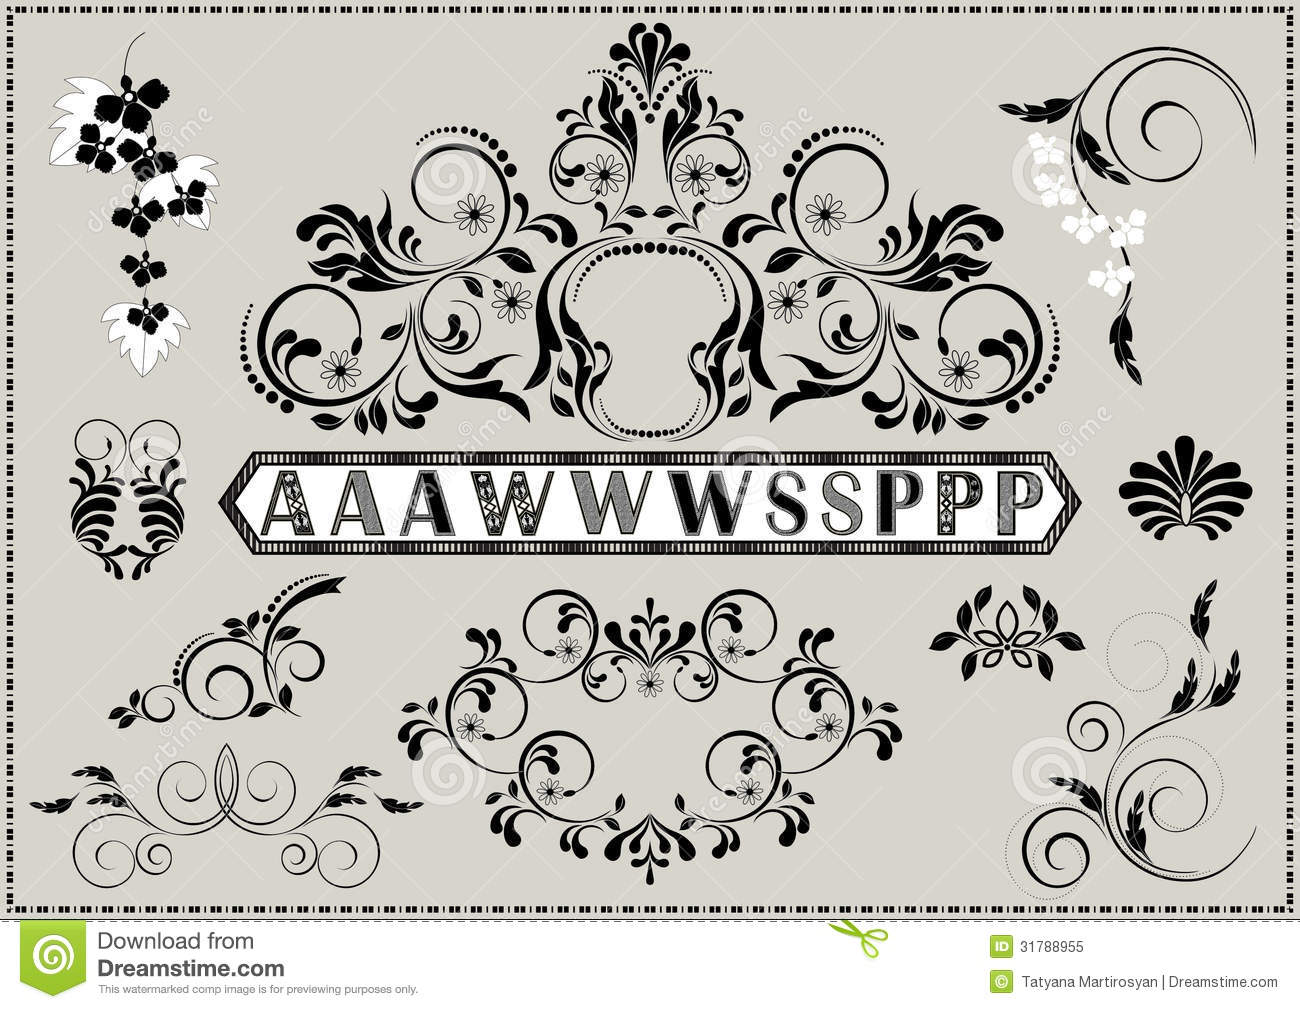 Collection of calligraphy patterns and letters with